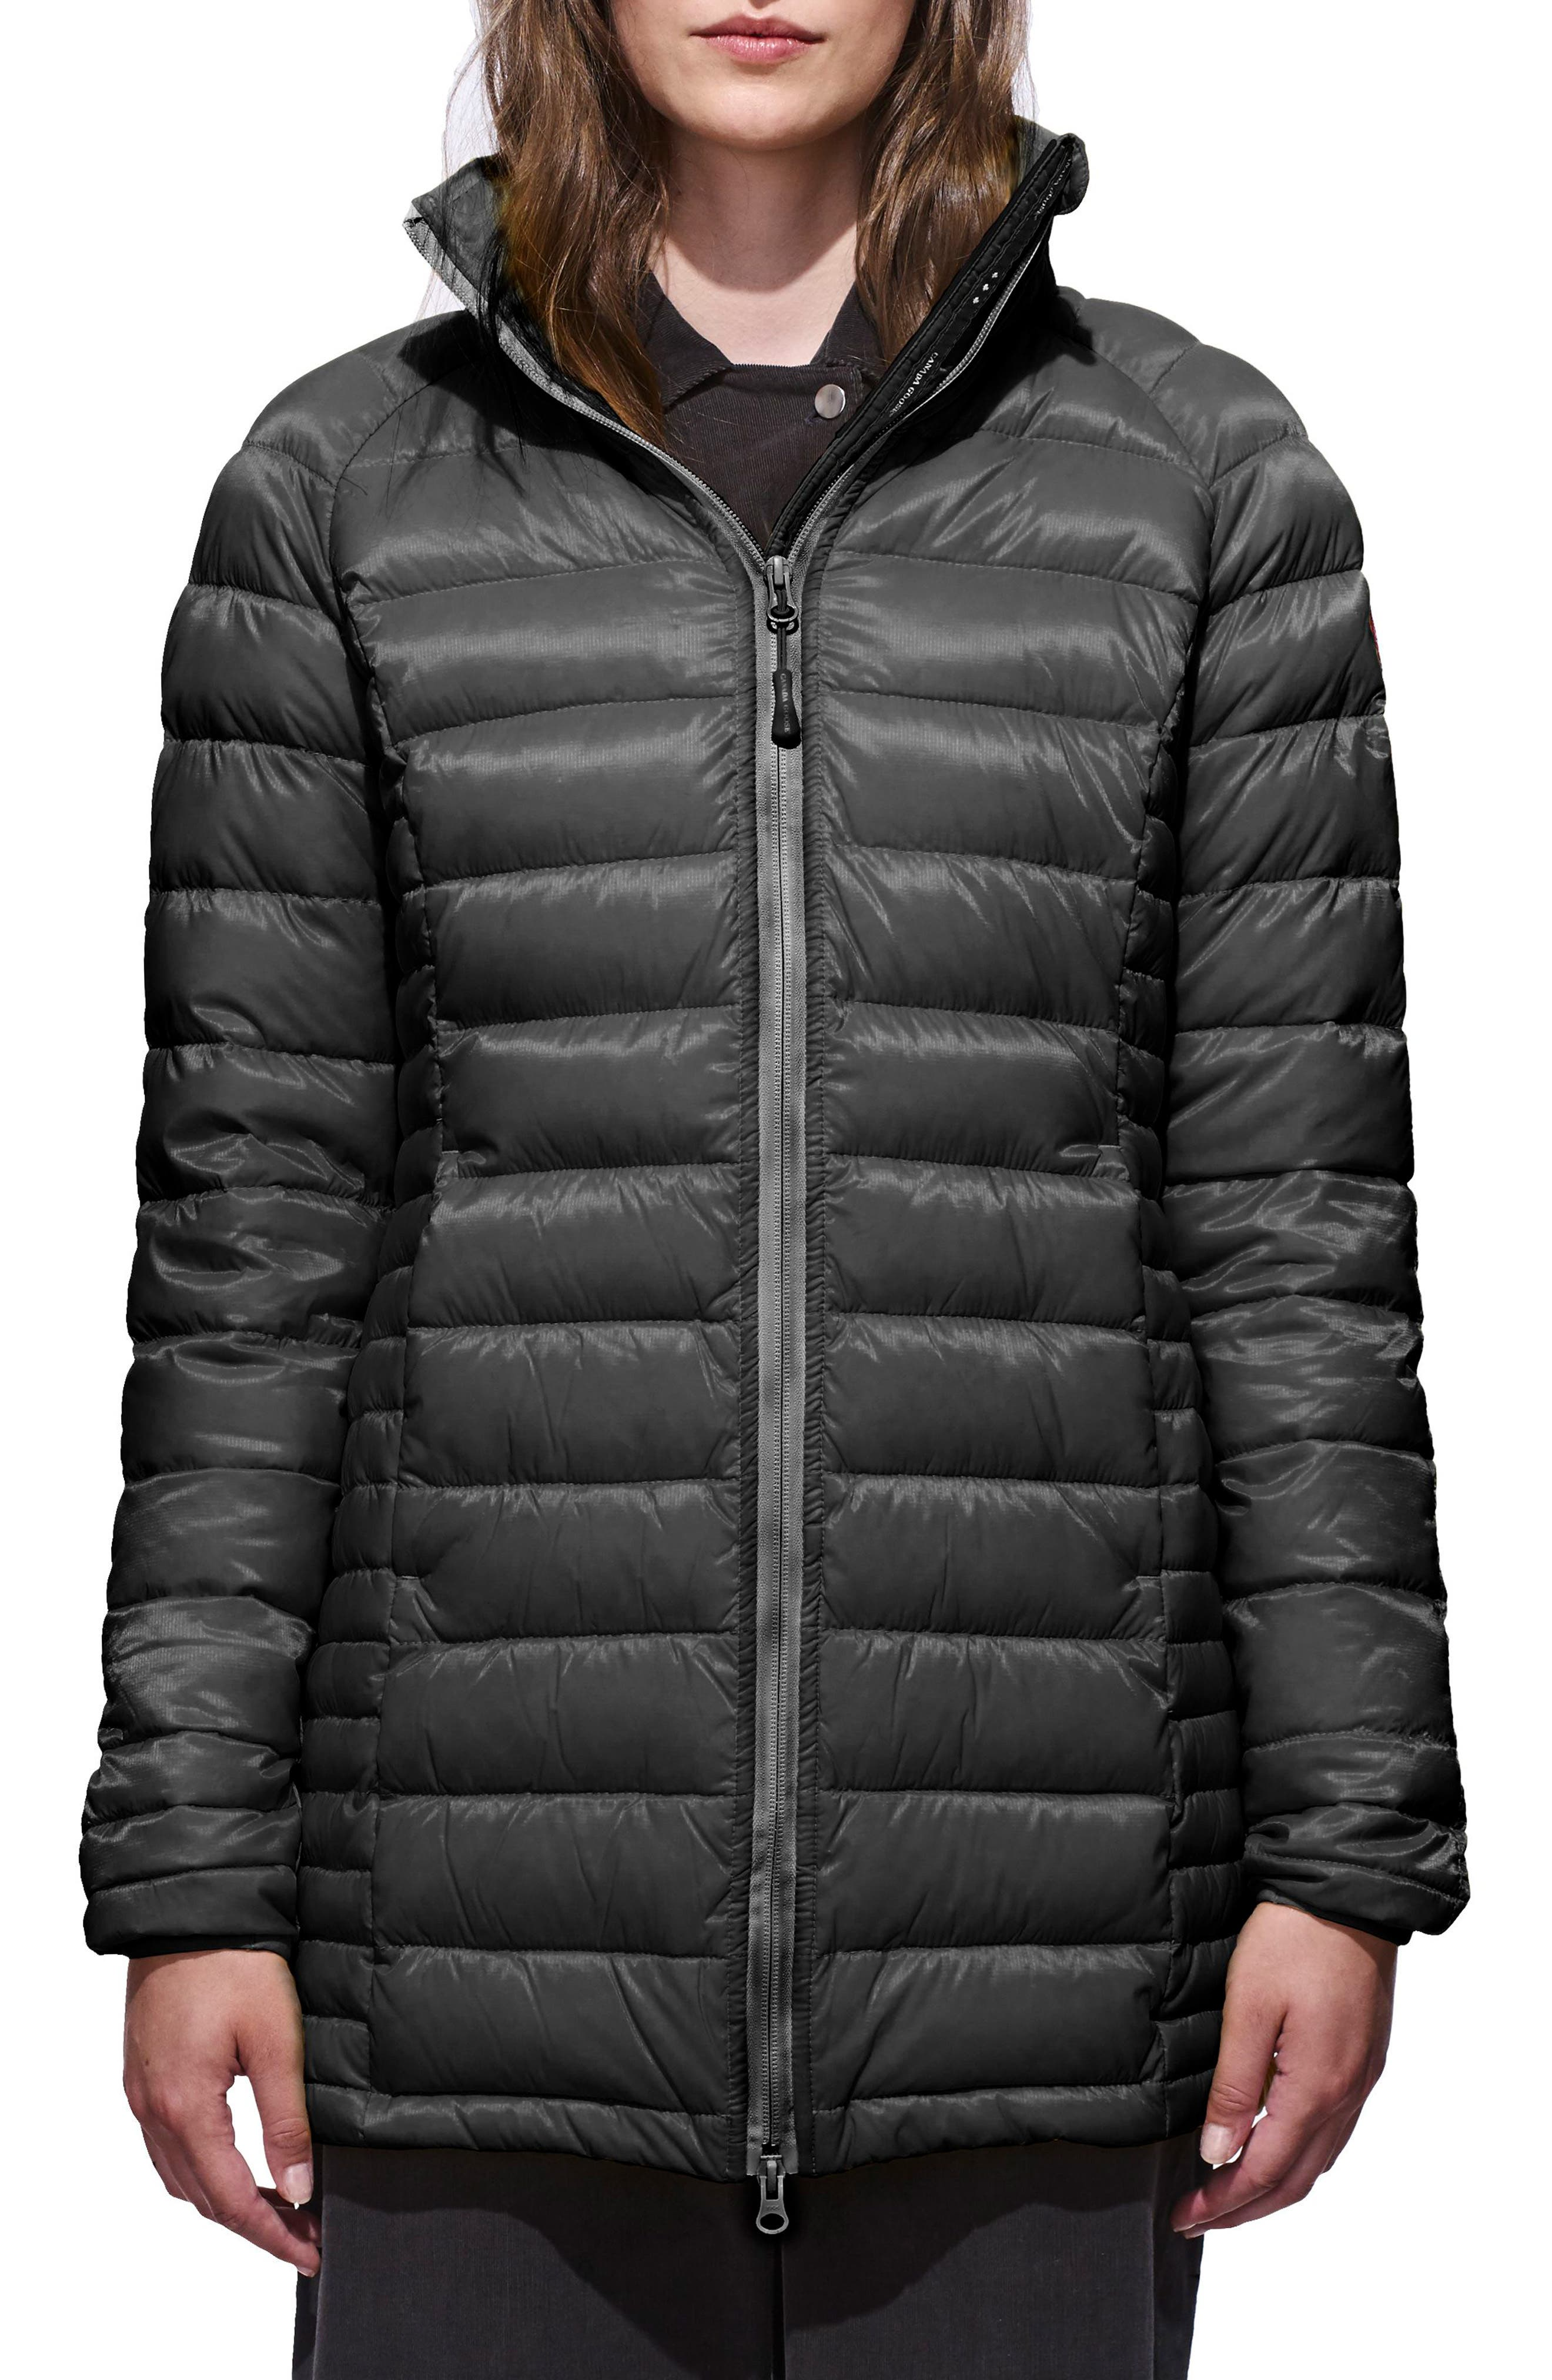 'Brookvale' Hooded Quilted Down Coat,                             Main thumbnail 1, color,                             Graphite/ Black